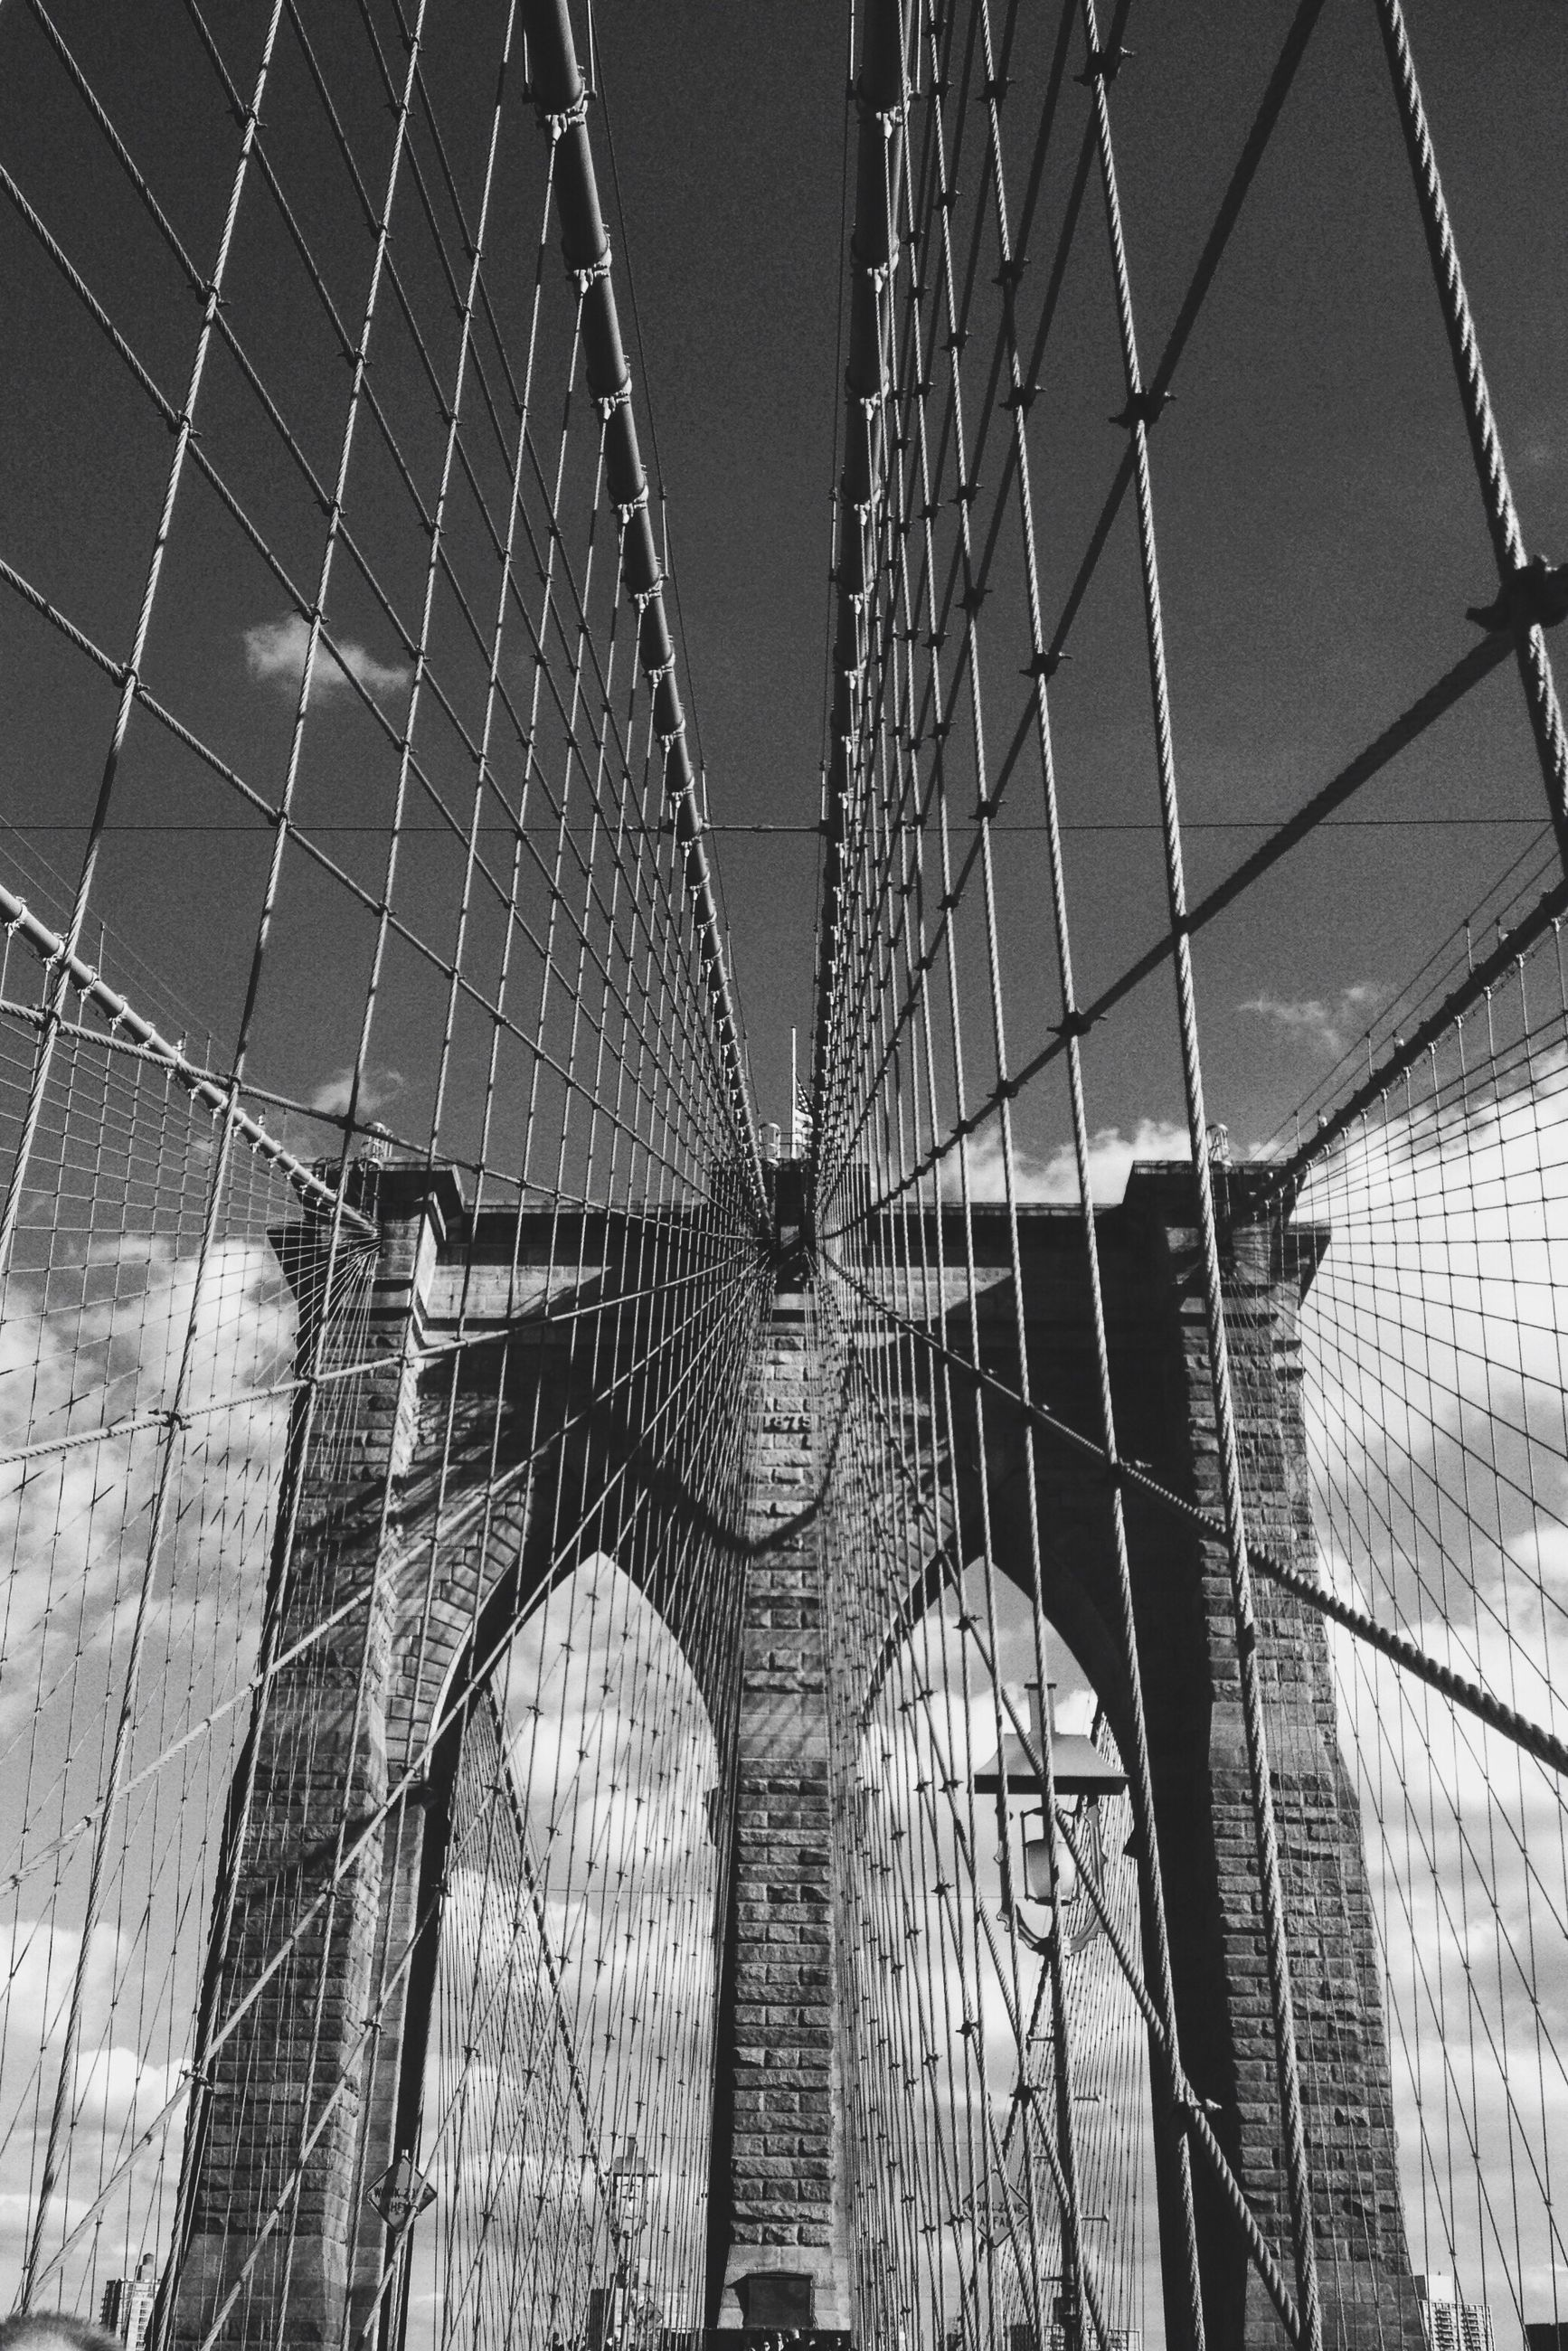 built structure, architecture, bridge - man made structure, low angle view, connection, engineering, modern, transportation, city, metal, building exterior, famous place, capital cities, sky, suspension bridge, travel destinations, travel, day, tall - high, outdoors